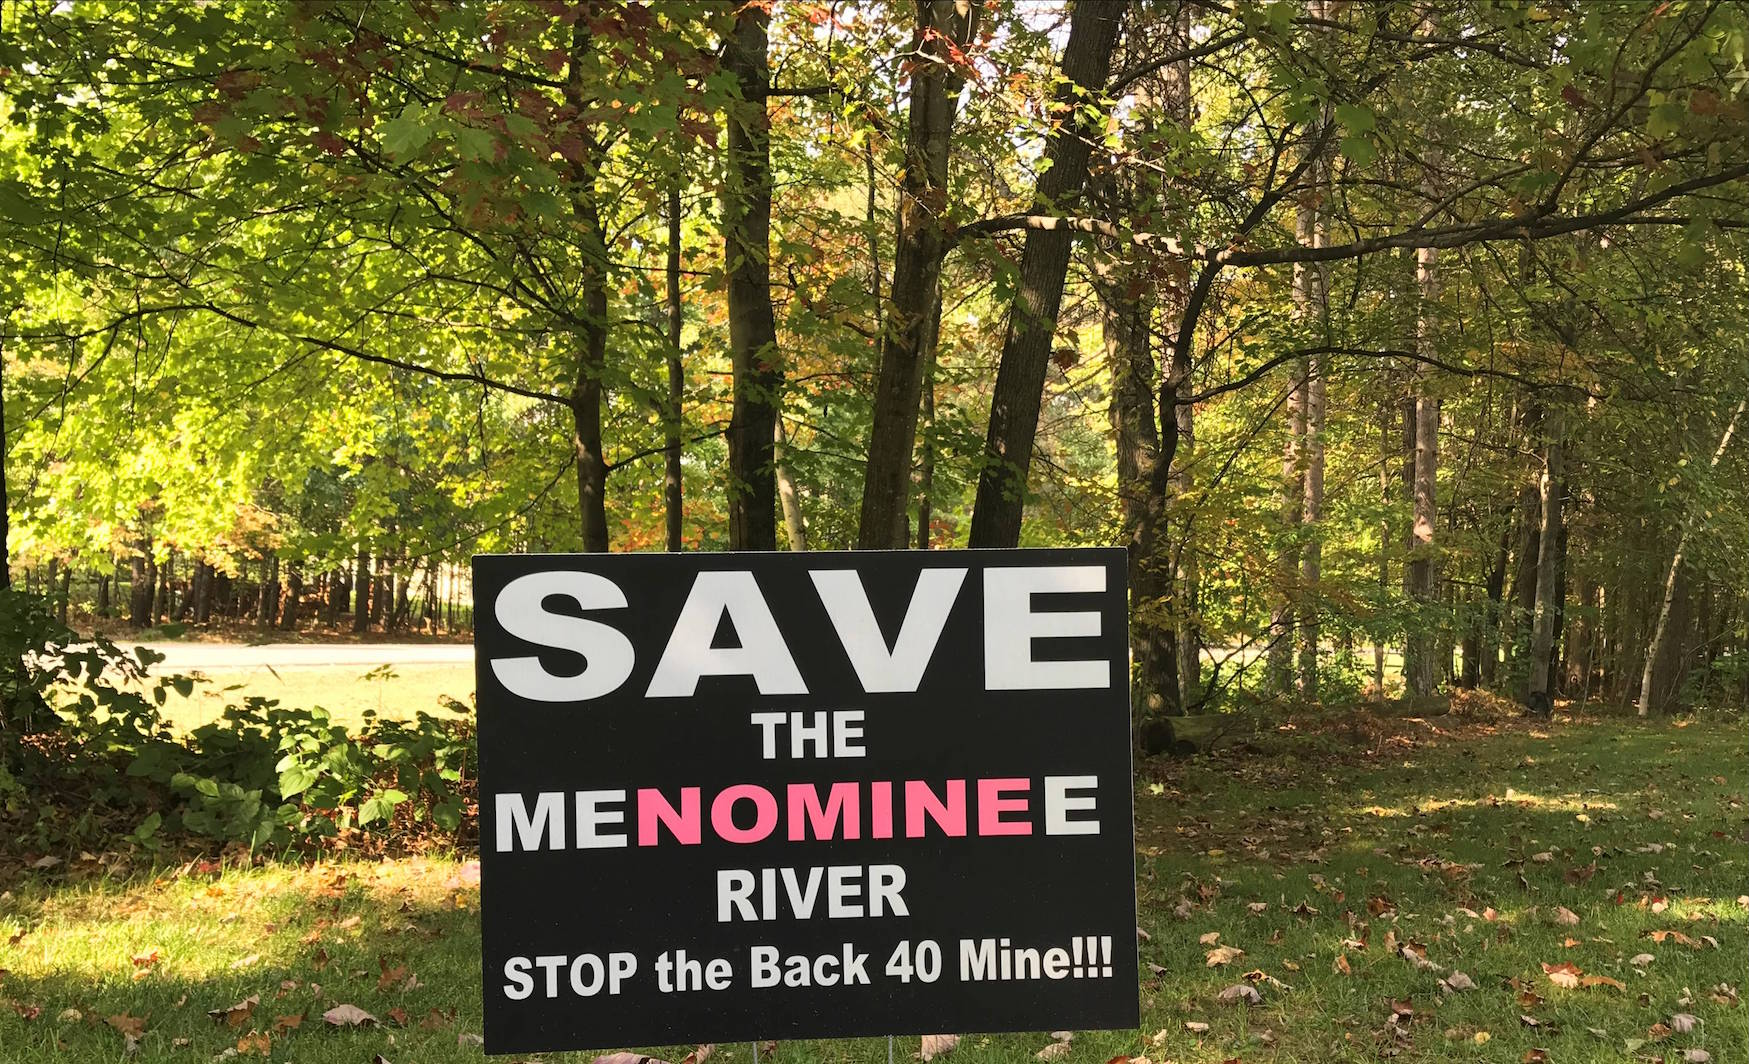 Save the Menominee River. Stop the Back 40 Mine!